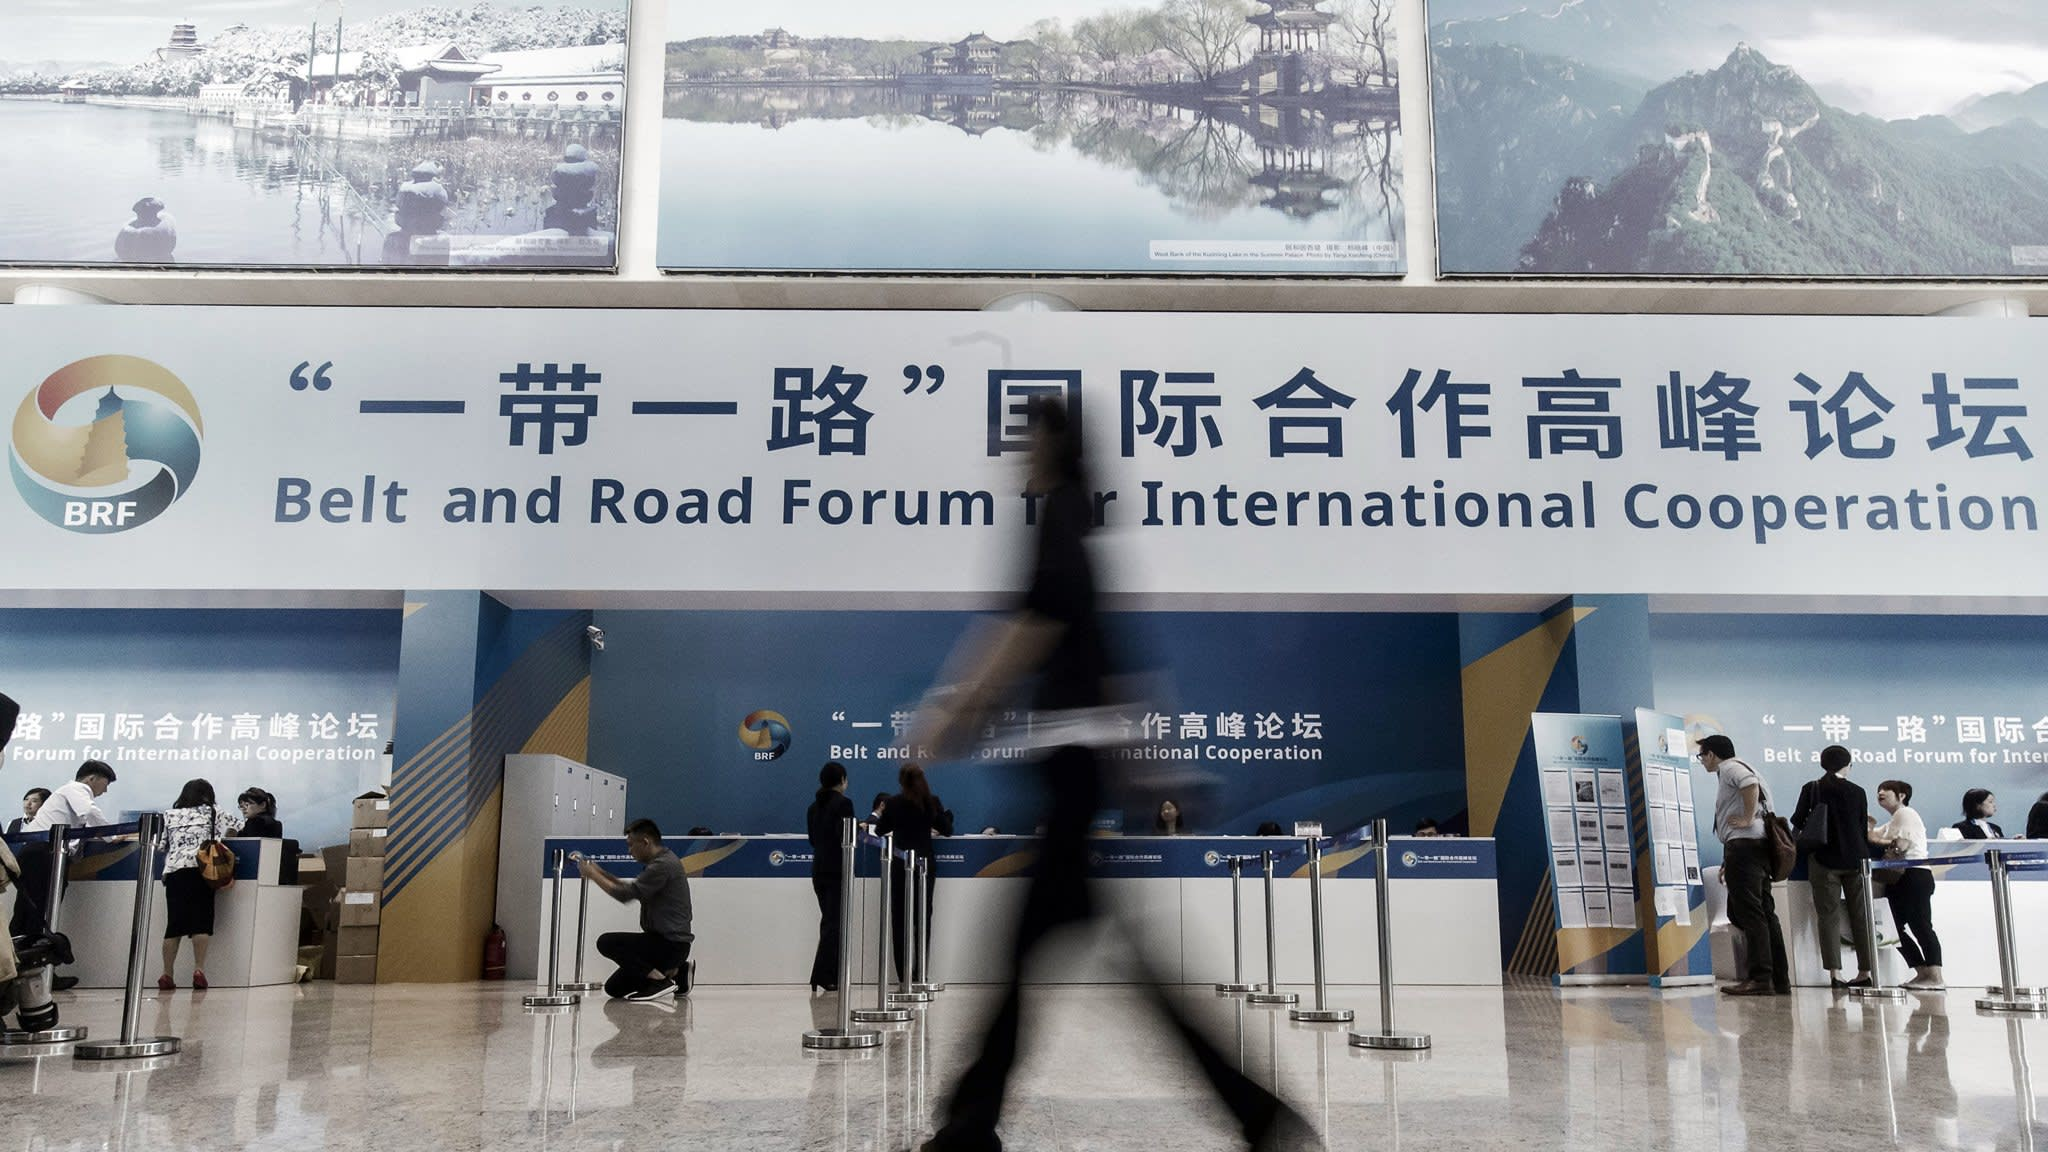 Western banks race to win China's Belt and Road Initiative deals